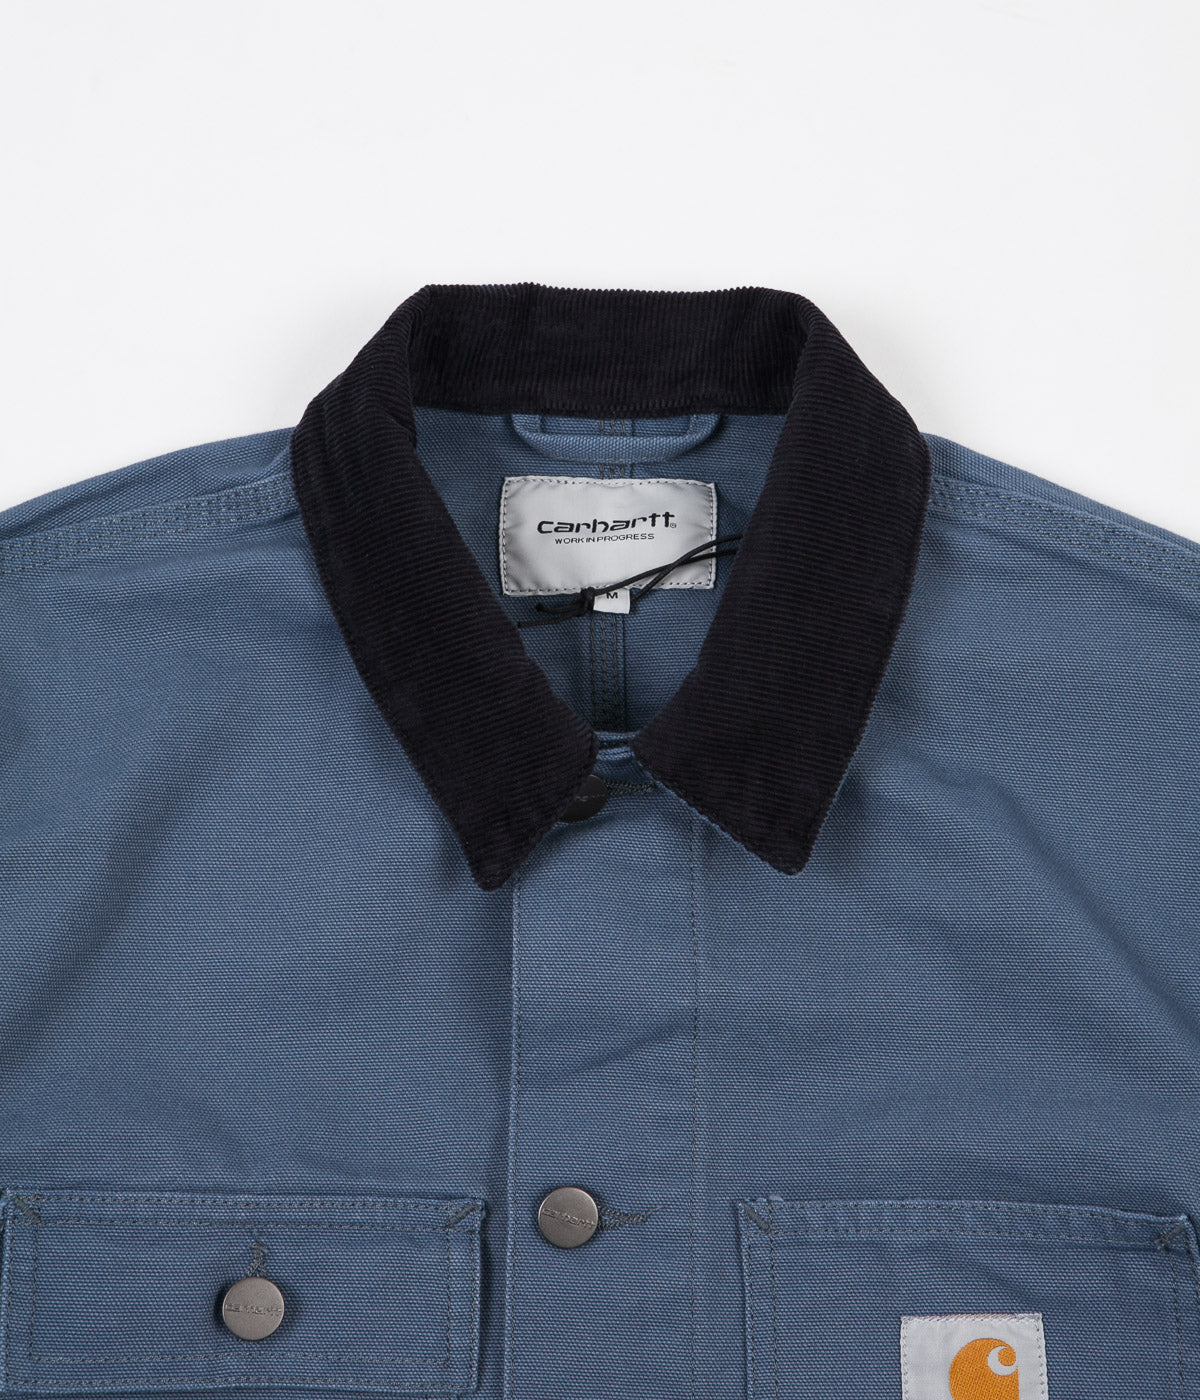 Carhartt Michigan Chore Coat - Stone Blue / Dark Navy